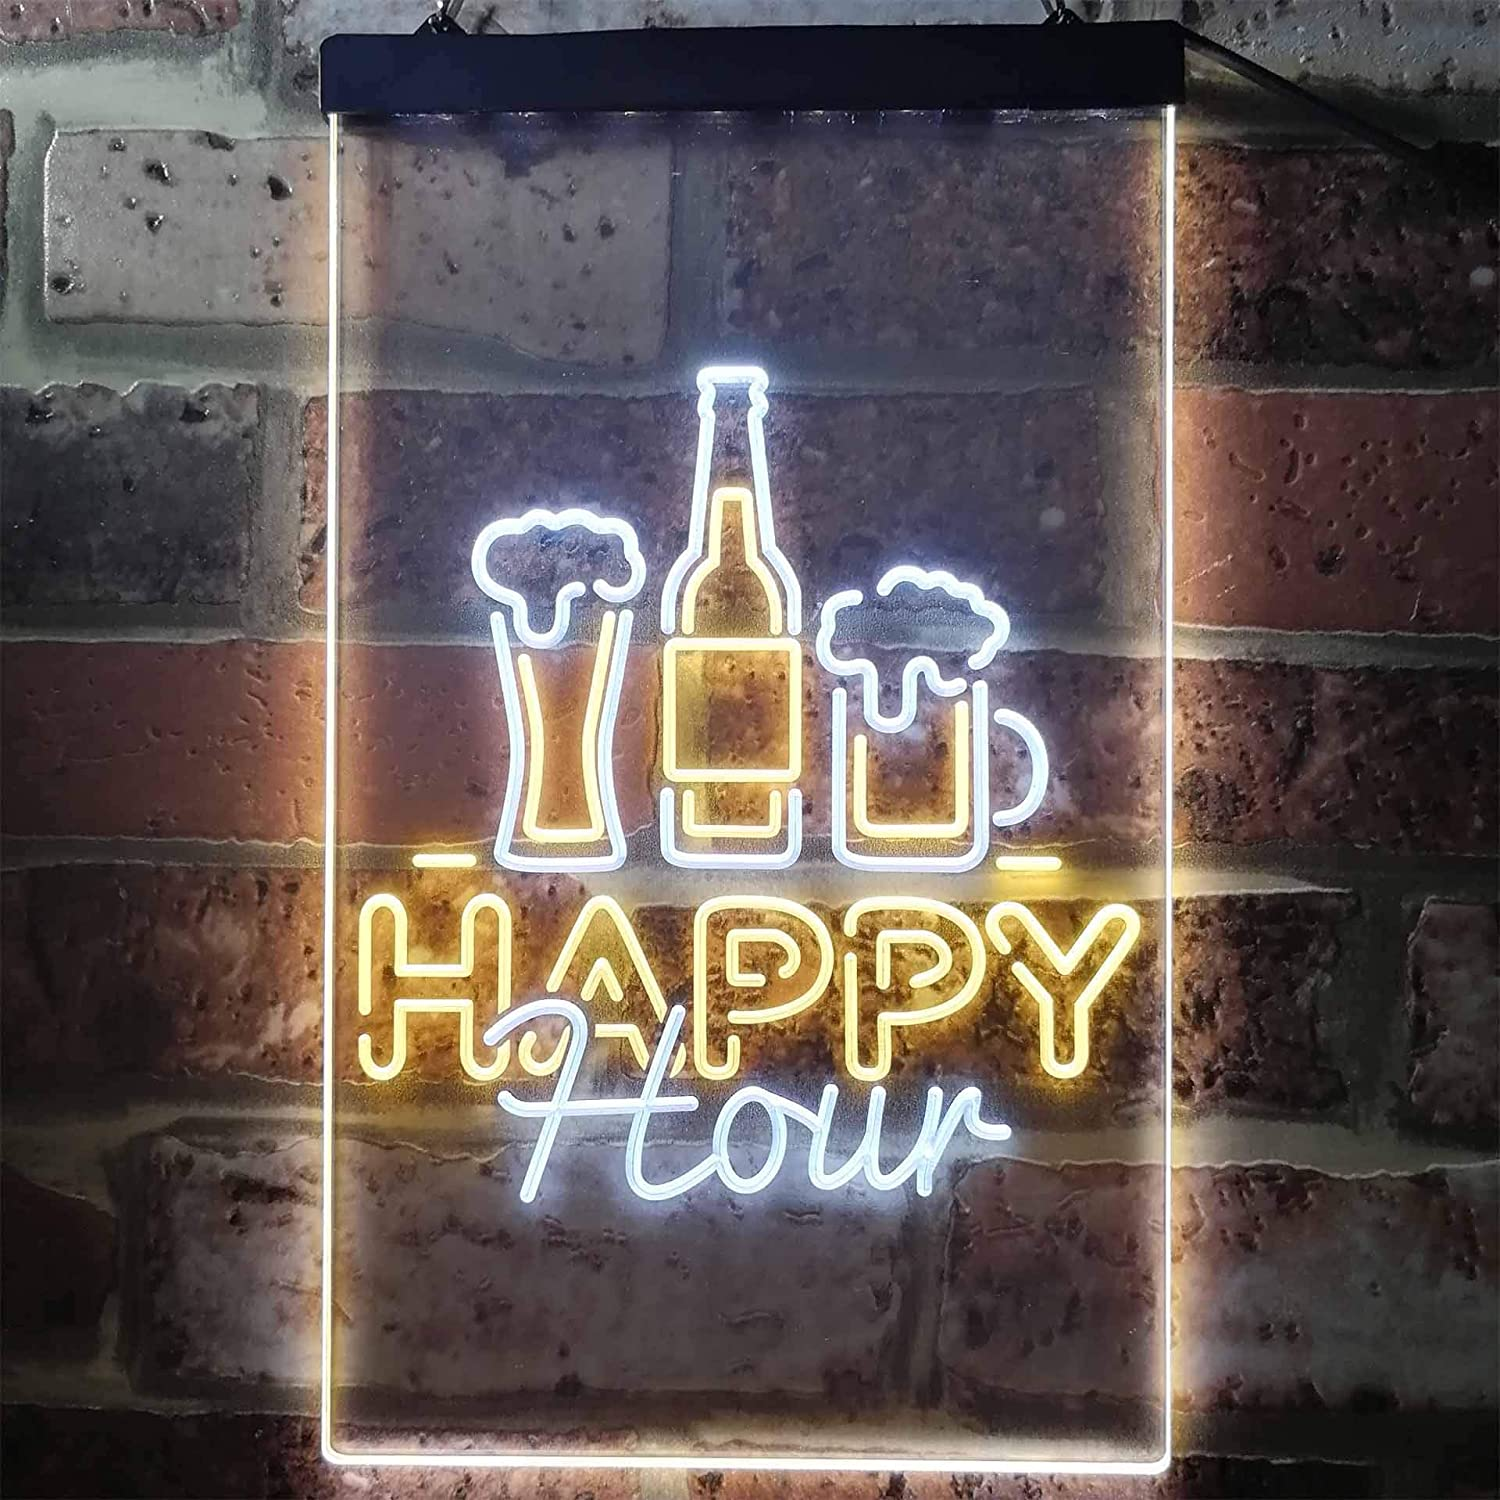 ADV PRO Happy Hour Beverage Home Bar Dual Color LED Enseigne Lumineuse Neon Sign Bleu et Rouge 210 x 300mm st6s23-i3243-br